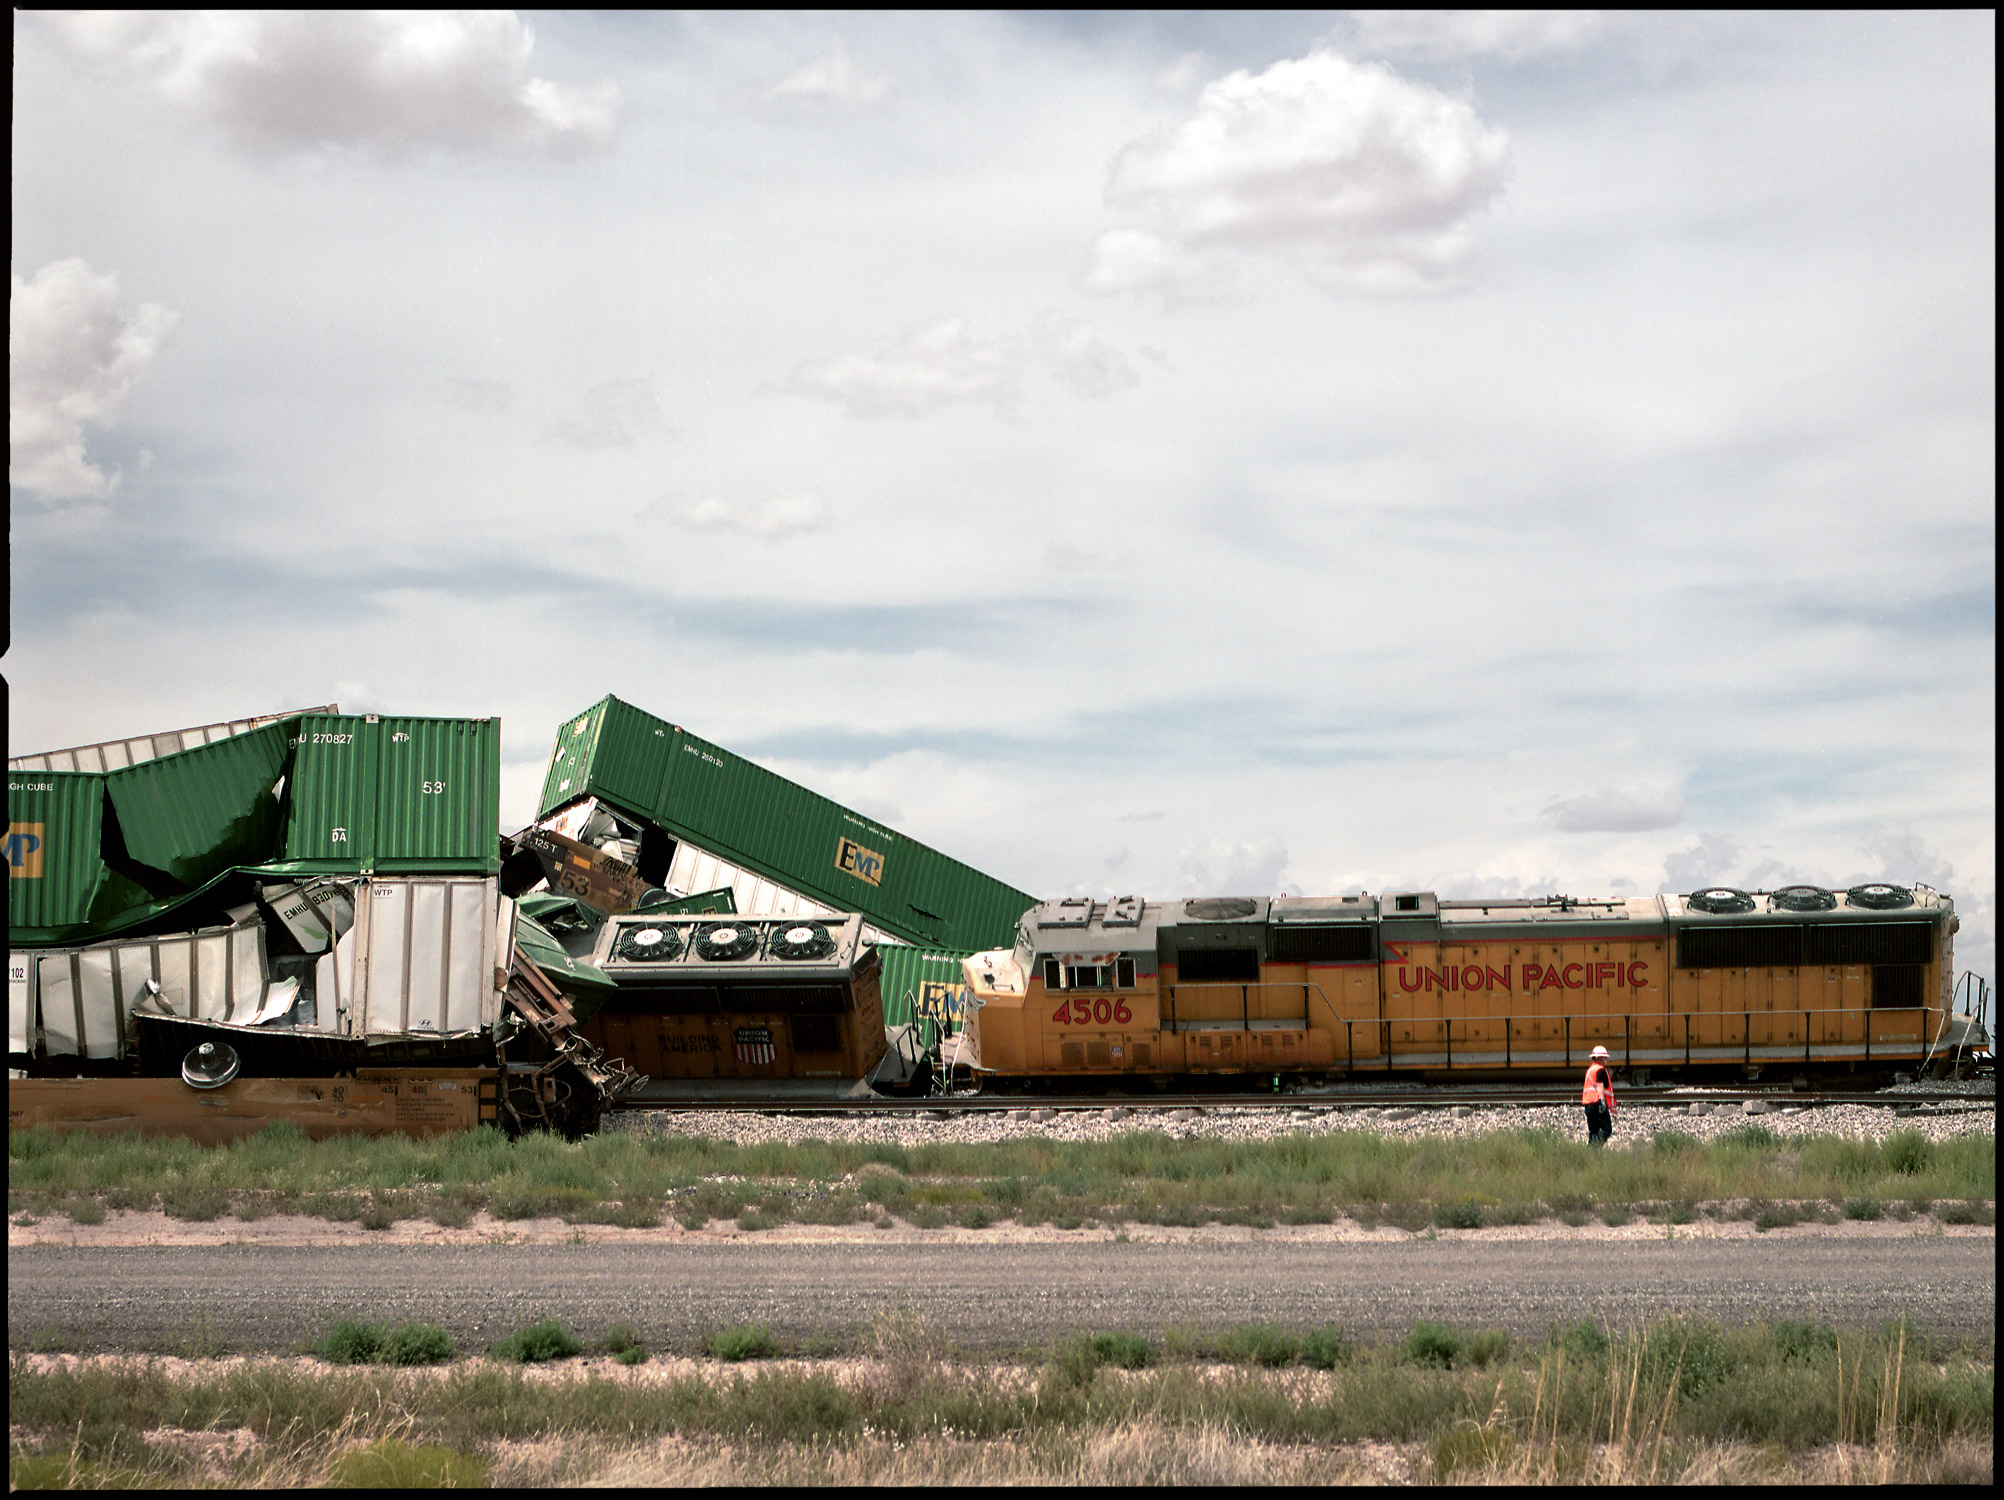 Highway Train Crash - Stephen Denton Photography - Phoenix AZ Commercial Photographer